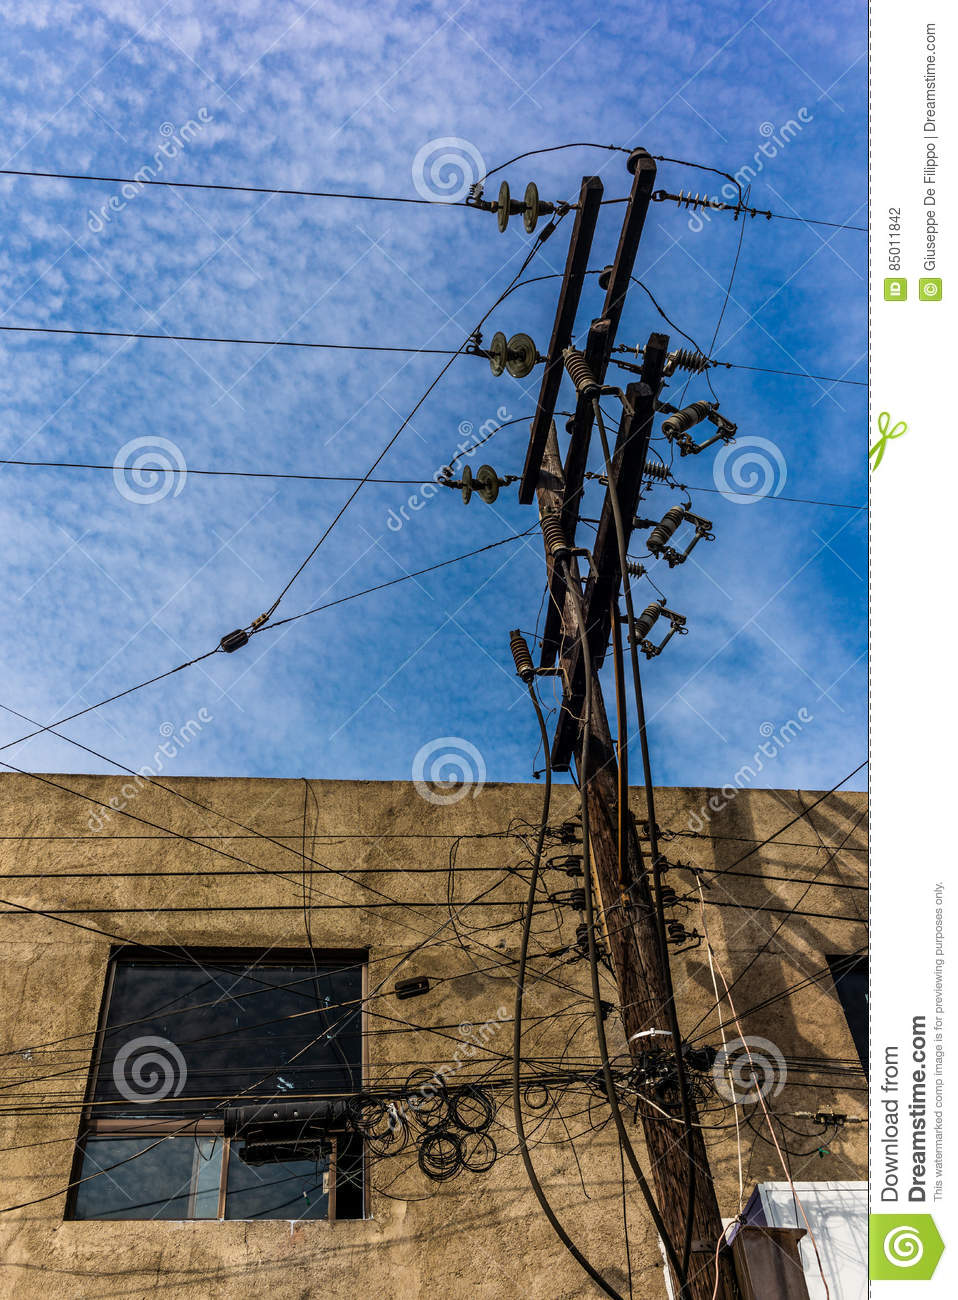 medium resolution of electricity and telephone wires in mexico